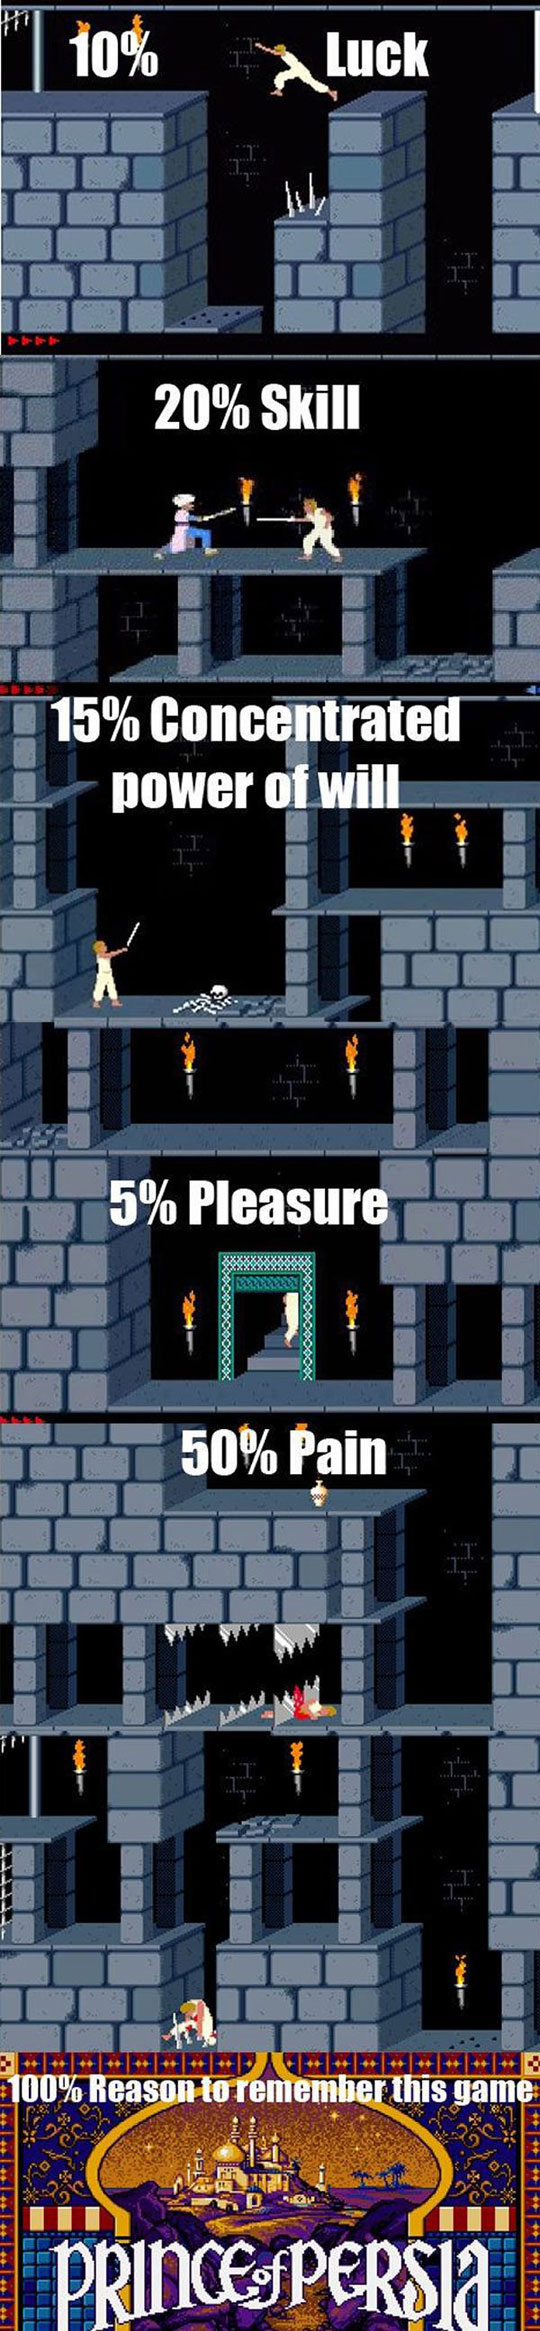 cool-Prince-Persia-classic-game-reasons